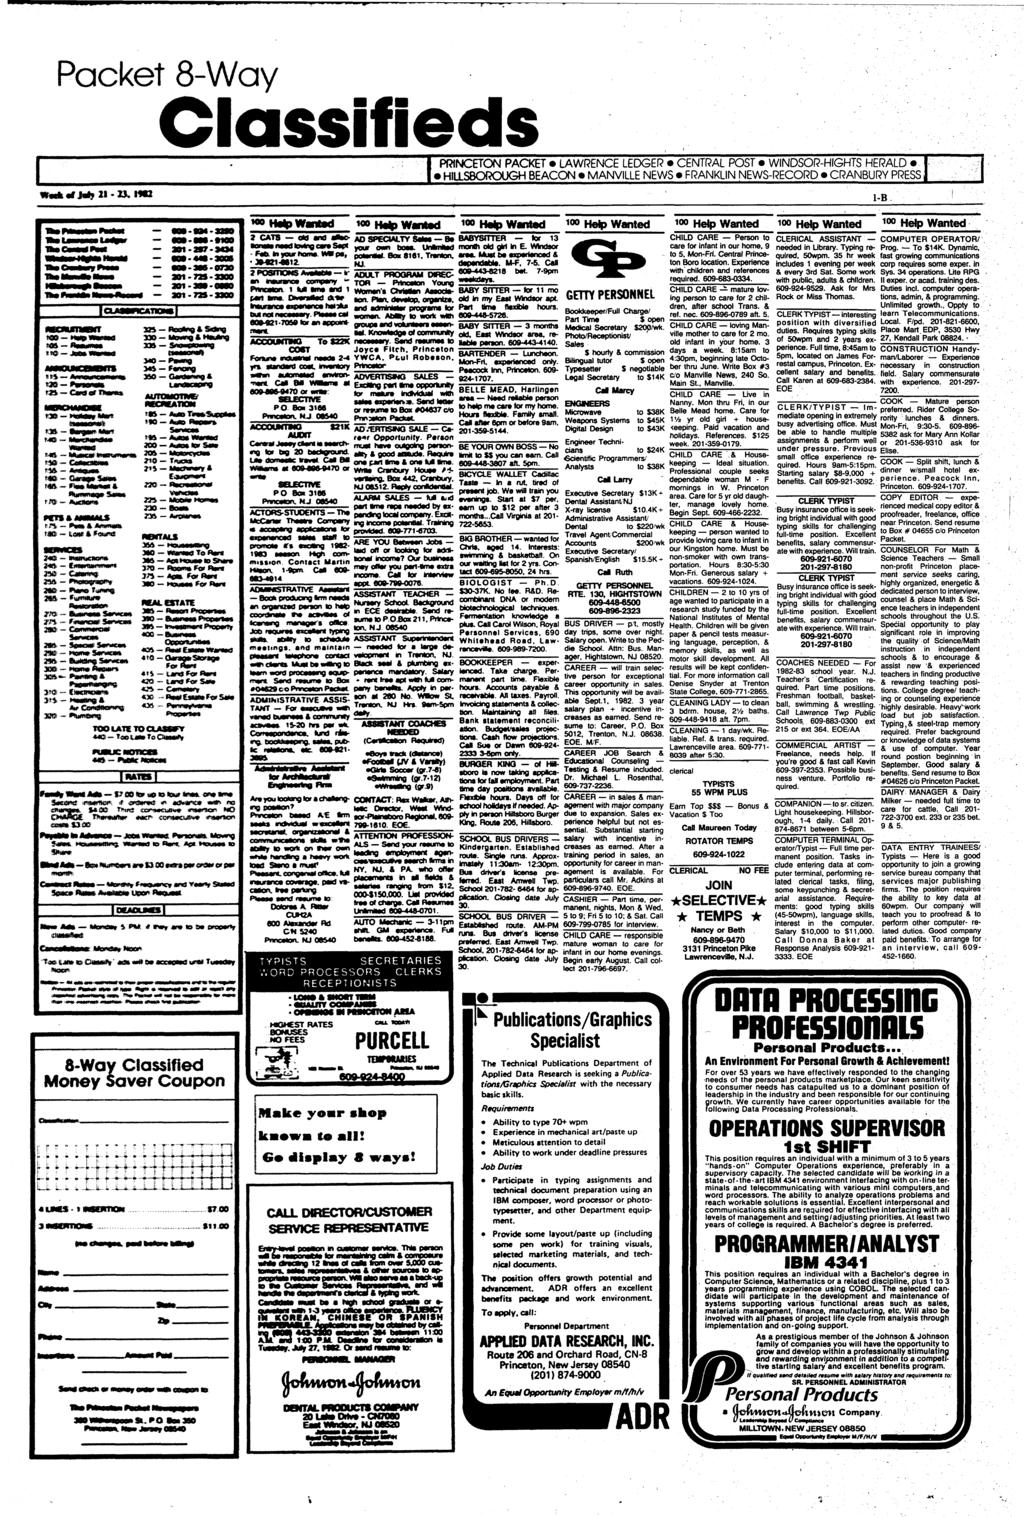 Packet 8-Way Classifieds IPRINCETON PACKET LAWRENCE LEDGER CENTRAL POST WINDSOR-HIGHTS HERALD I H1LLSBOROUGH BEACON* MANVILLE NEWS FRANKLIN NEWS-RECORD CRANBURY PRESS 1-B ftacmexw* 301-72S atraa*s IF